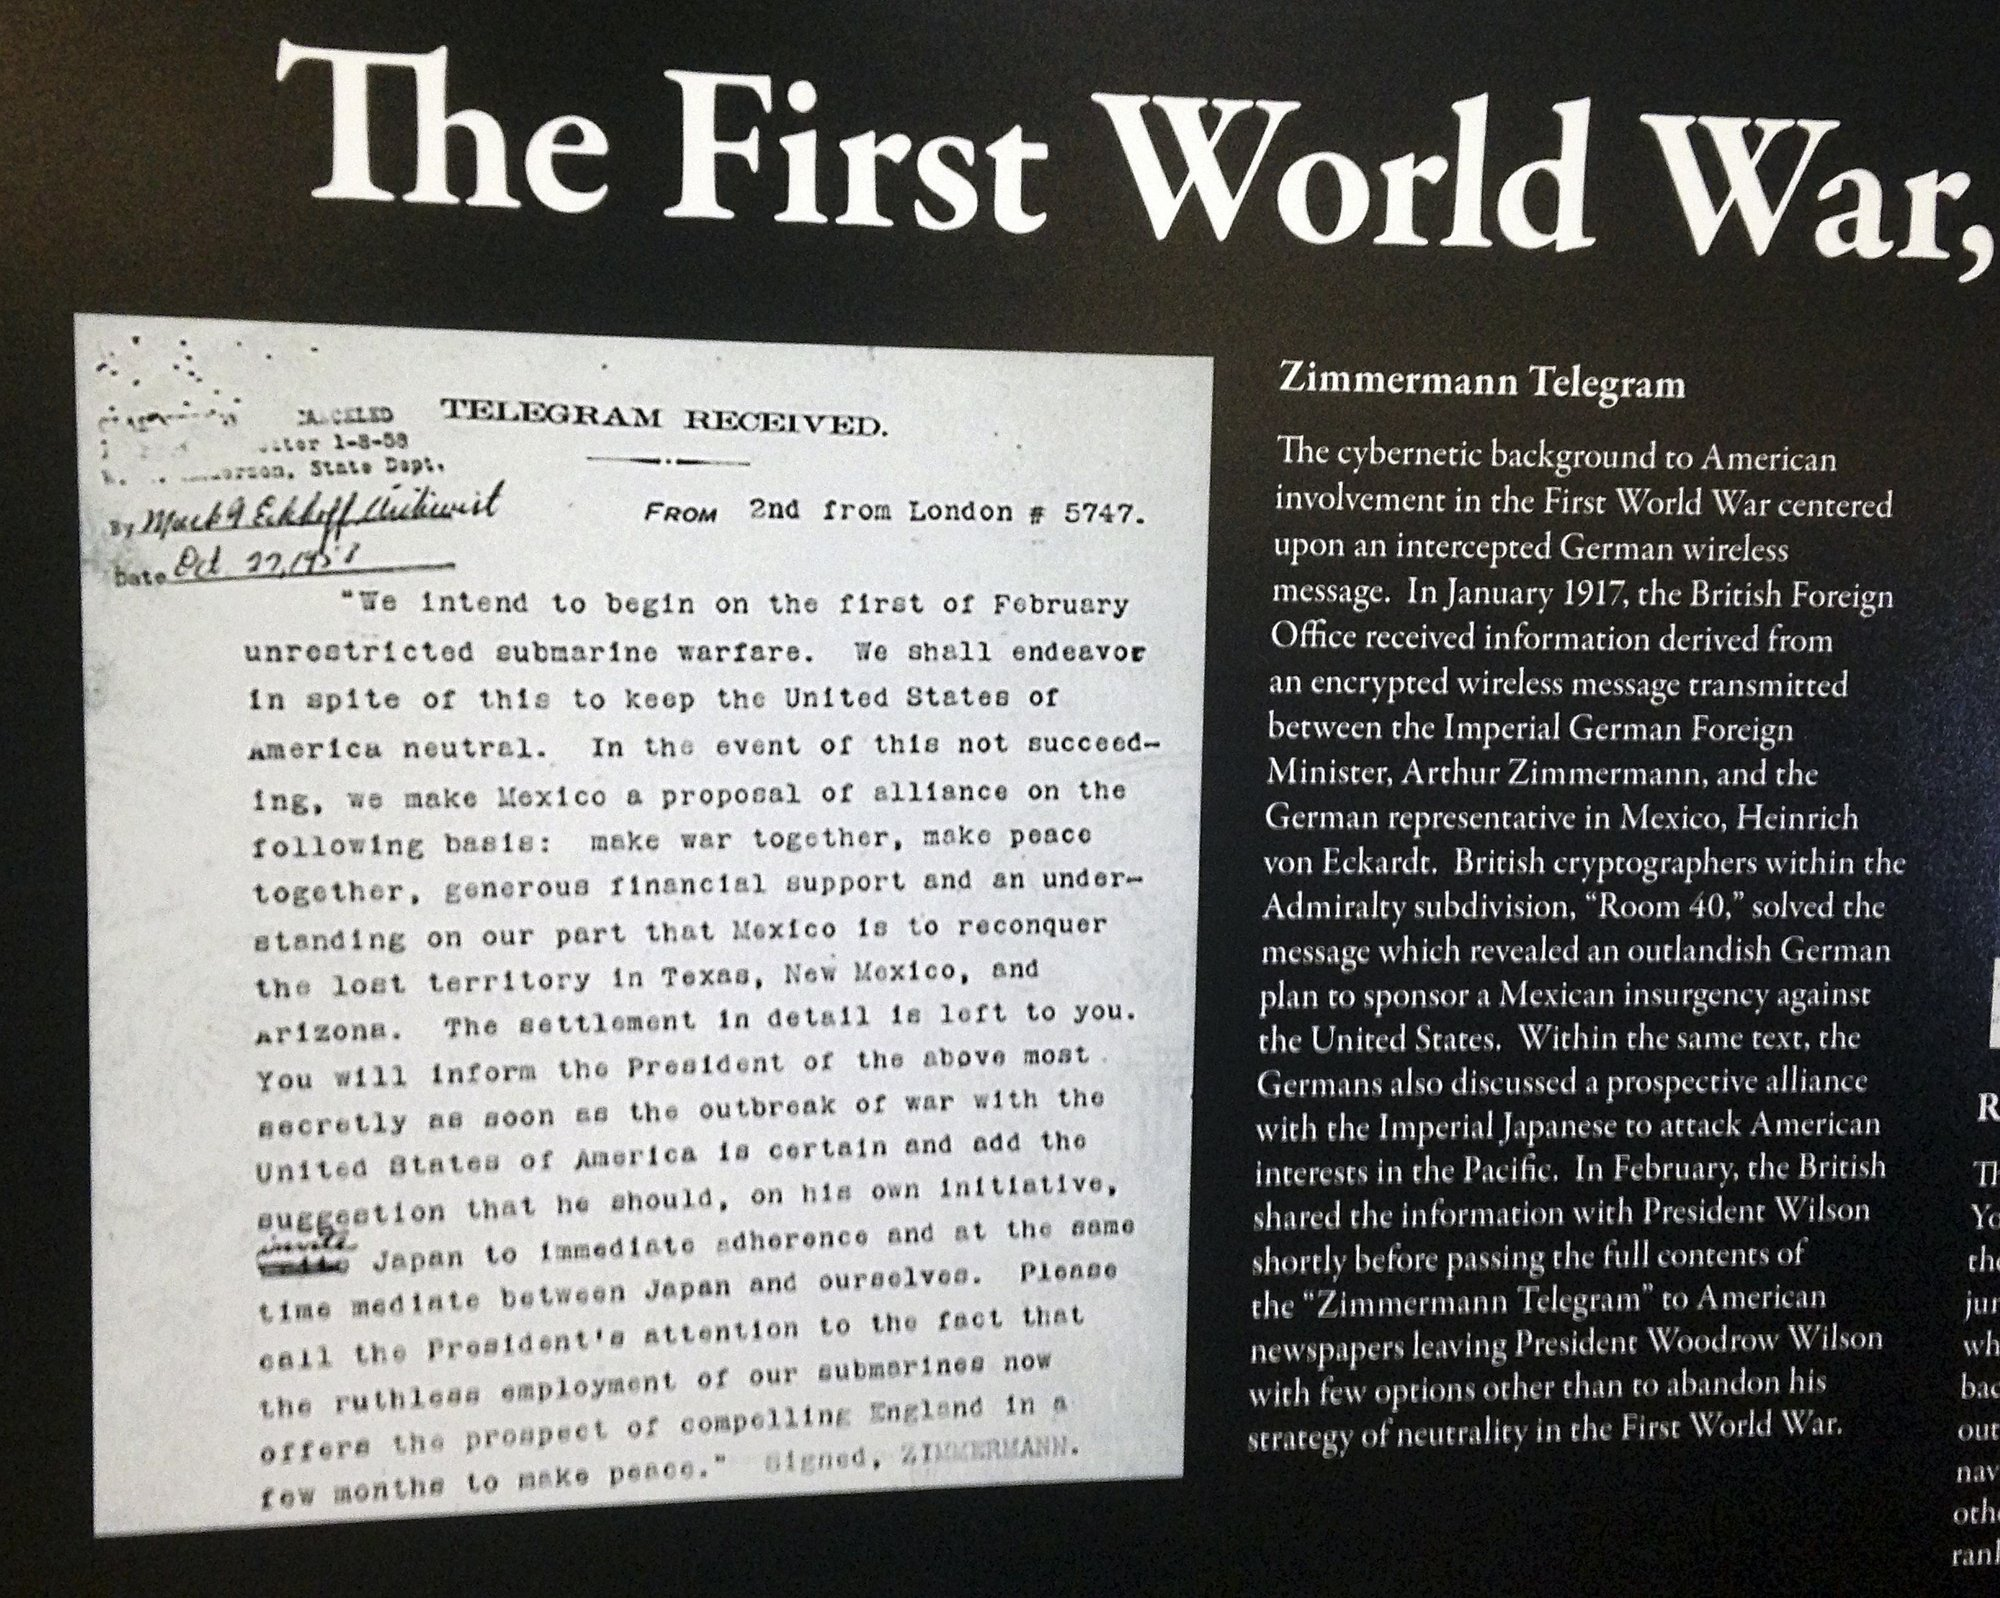 Secret WWI telegram holds lessons for today, historians say